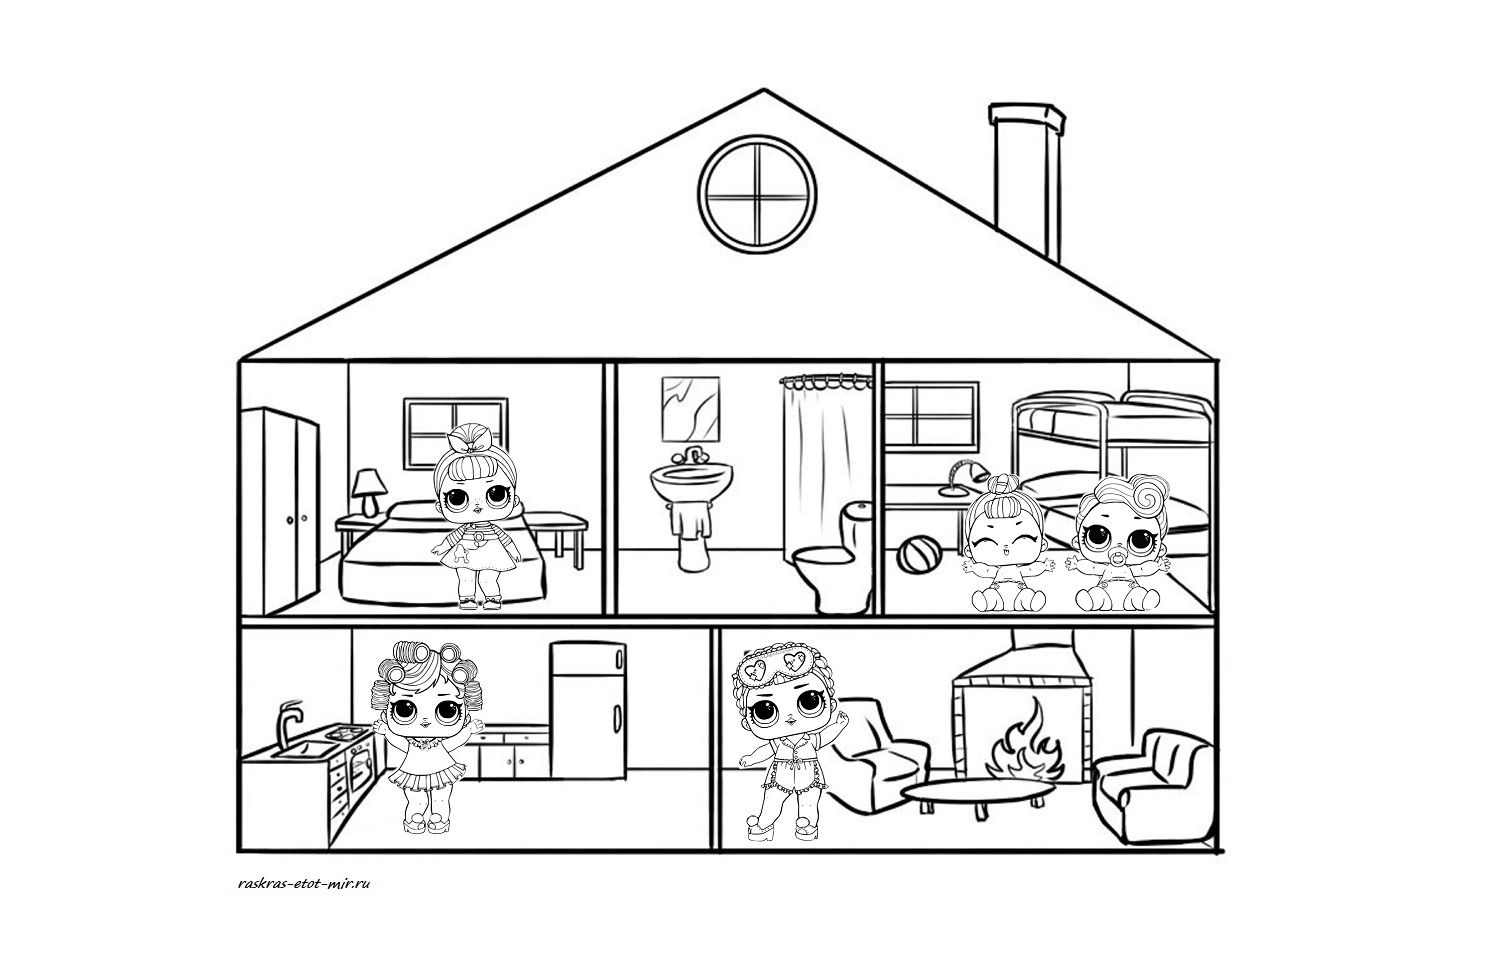 Lol House Coloring Pages Lol Doll House Coloring Pages Lol House Coloring Pages Lol Sur Coloring Pages For Kids Unicorn Coloring Pages House Colouring Pages